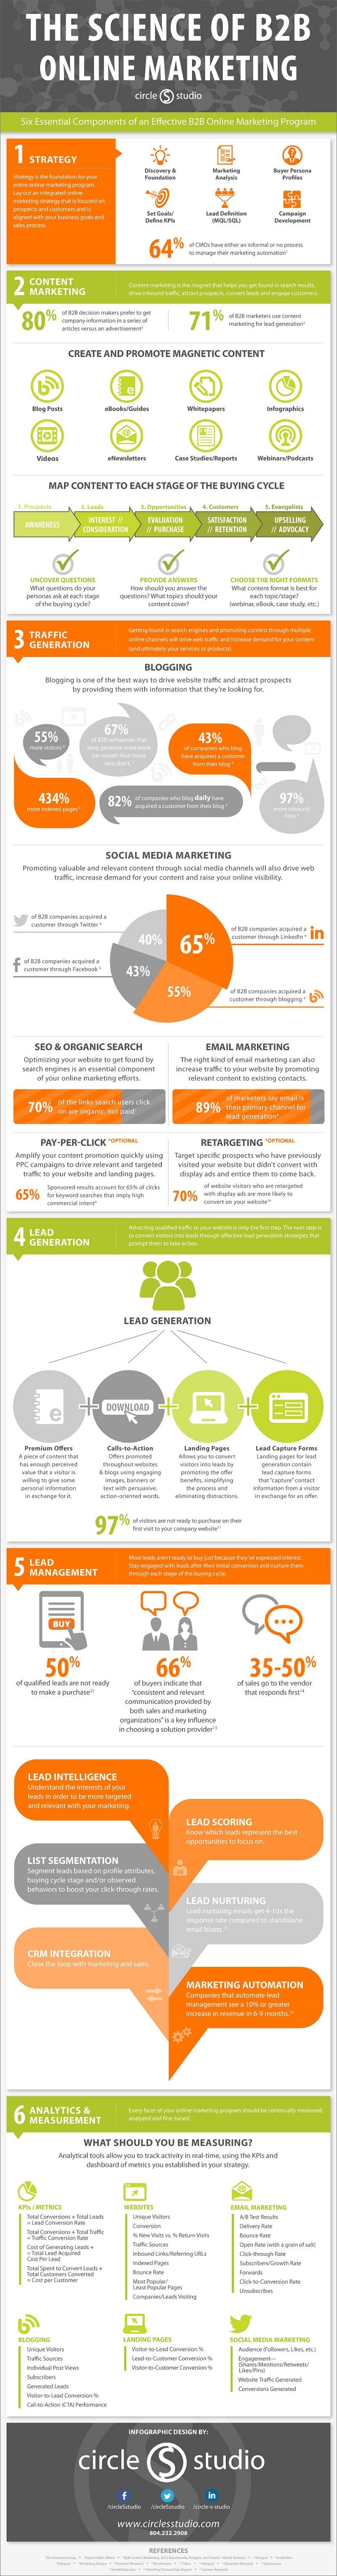 Marketing Strategy – The Science of B2B Online Marketing [Infographic] : MarketingProfs Ar ...